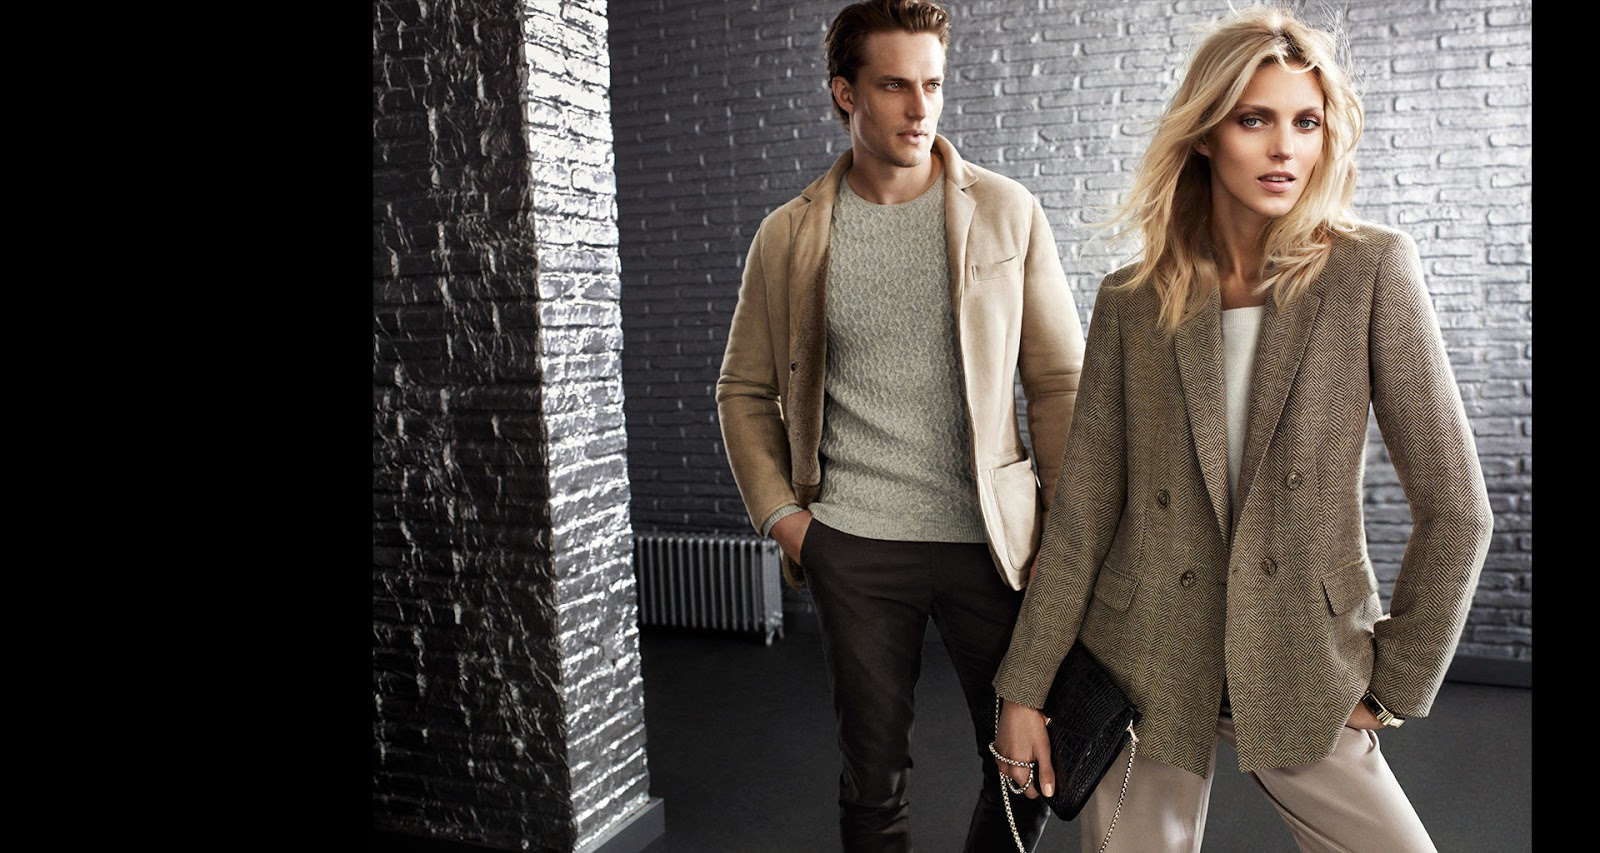 Forum on this topic: Massimo Dutti October 2014 Lookbook Goes Urban , massimo-dutti-october-2014-lookbook-goes-urban/